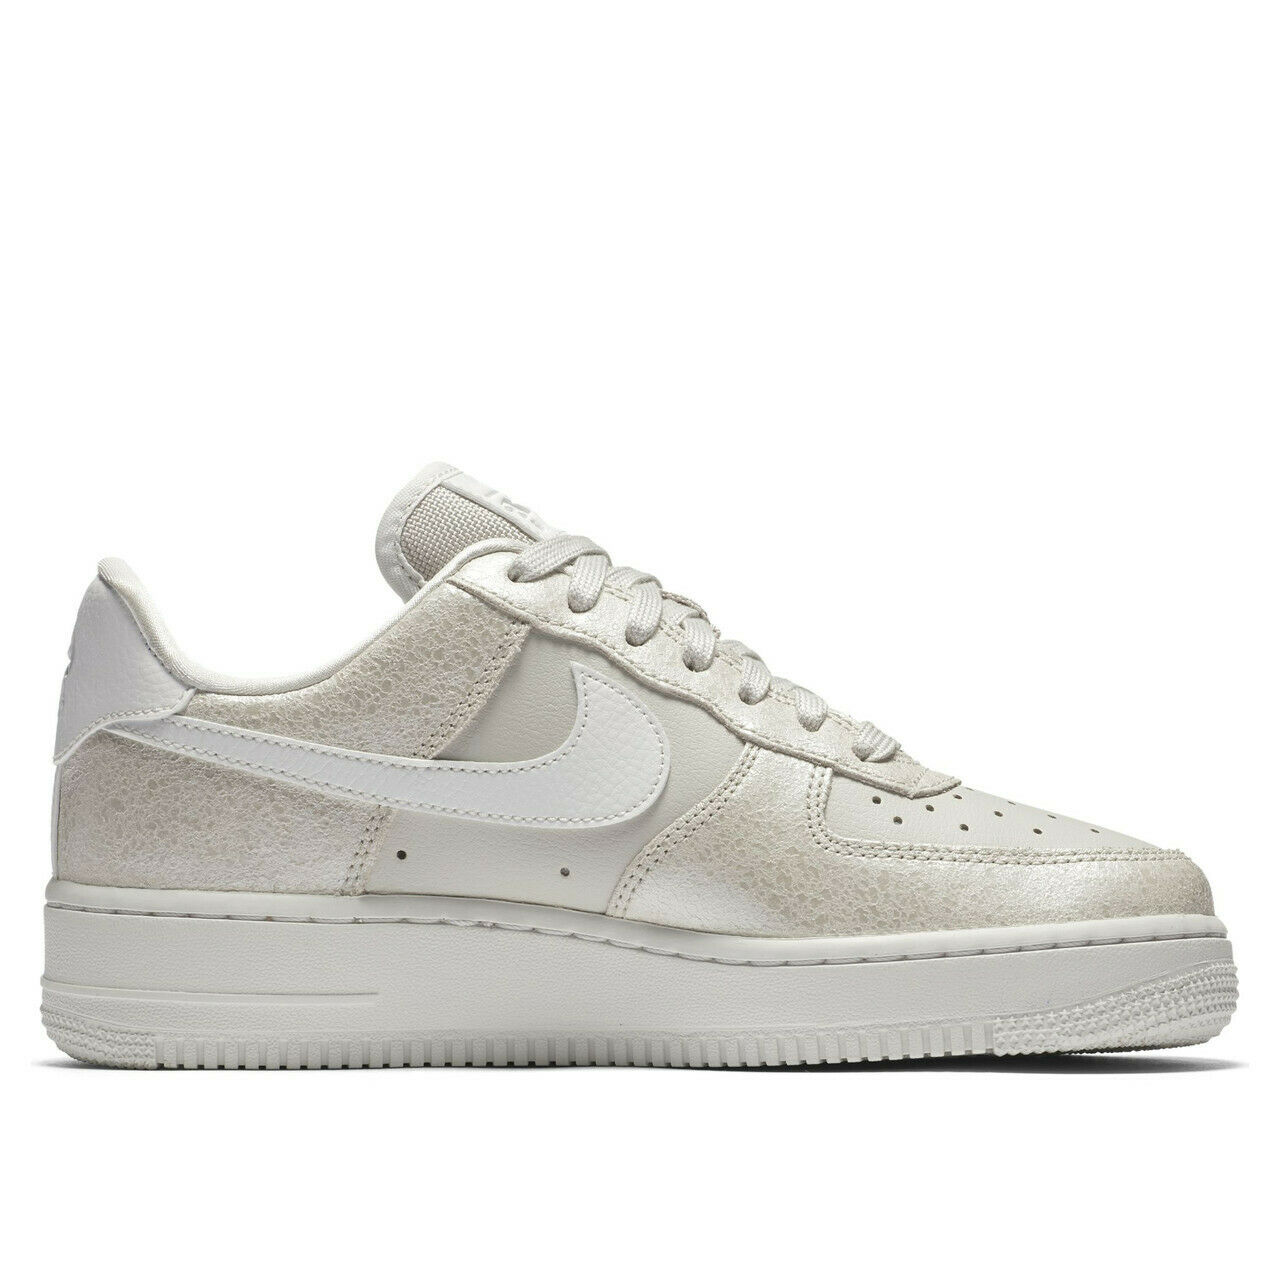 Nike Wmns Air Force 1' 07 Low Premium 896185-004 Taille 8.5 UK